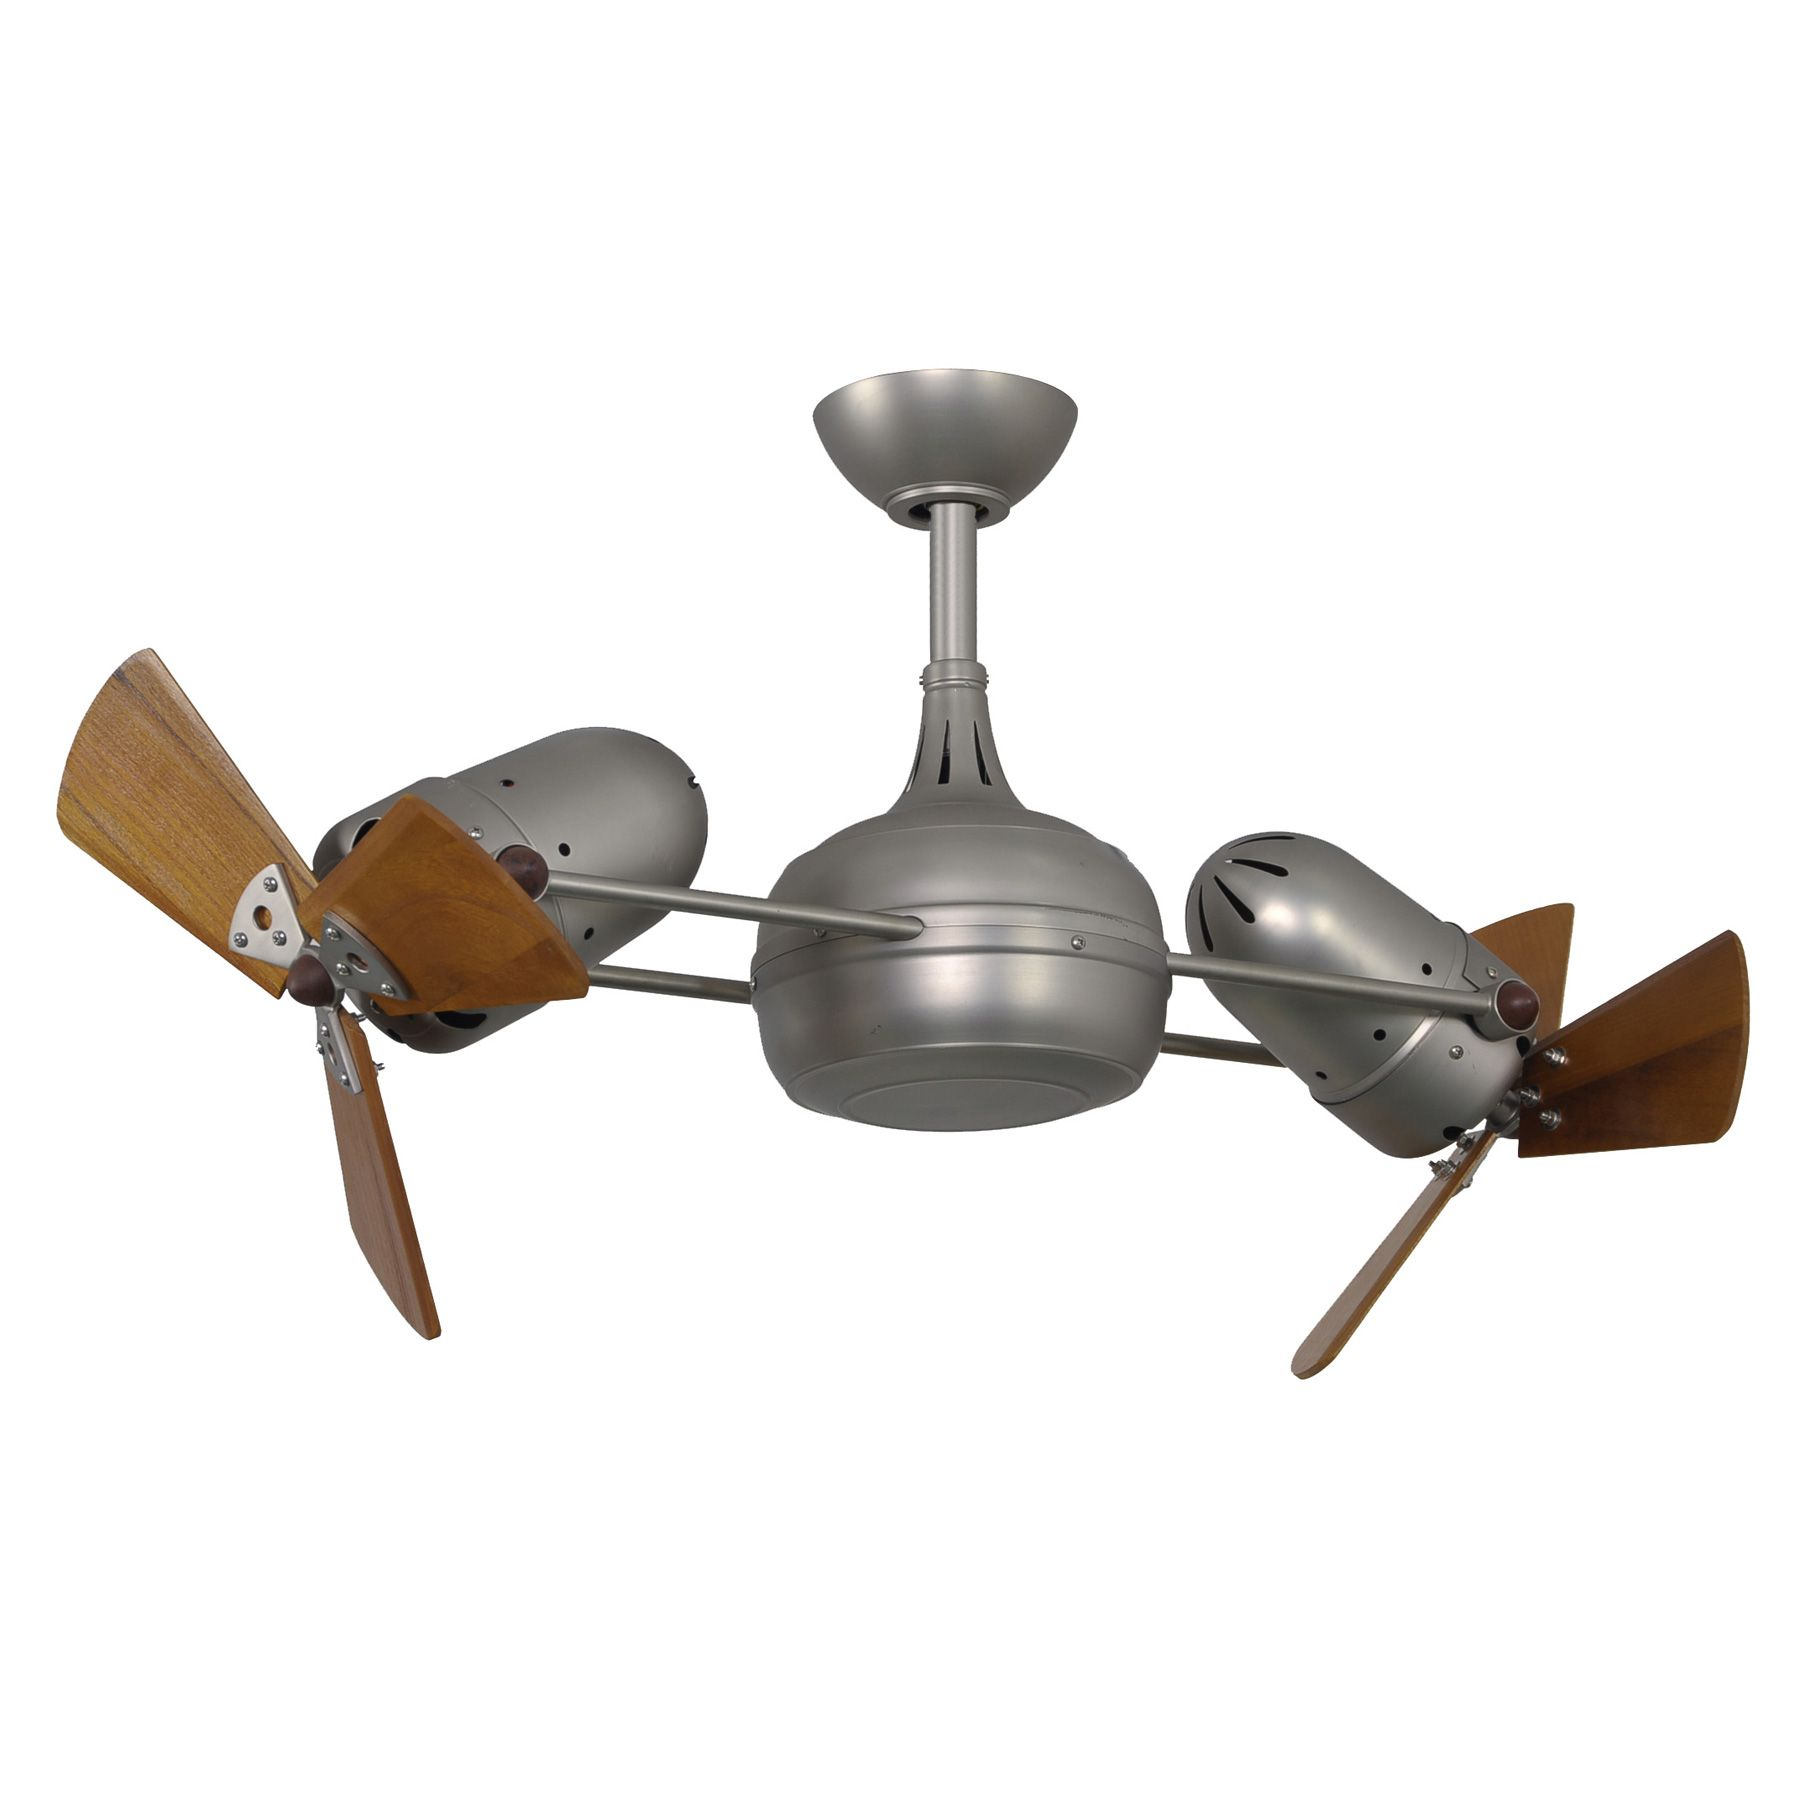 The double headed rotational ceiling fan Dagny with cylindrical